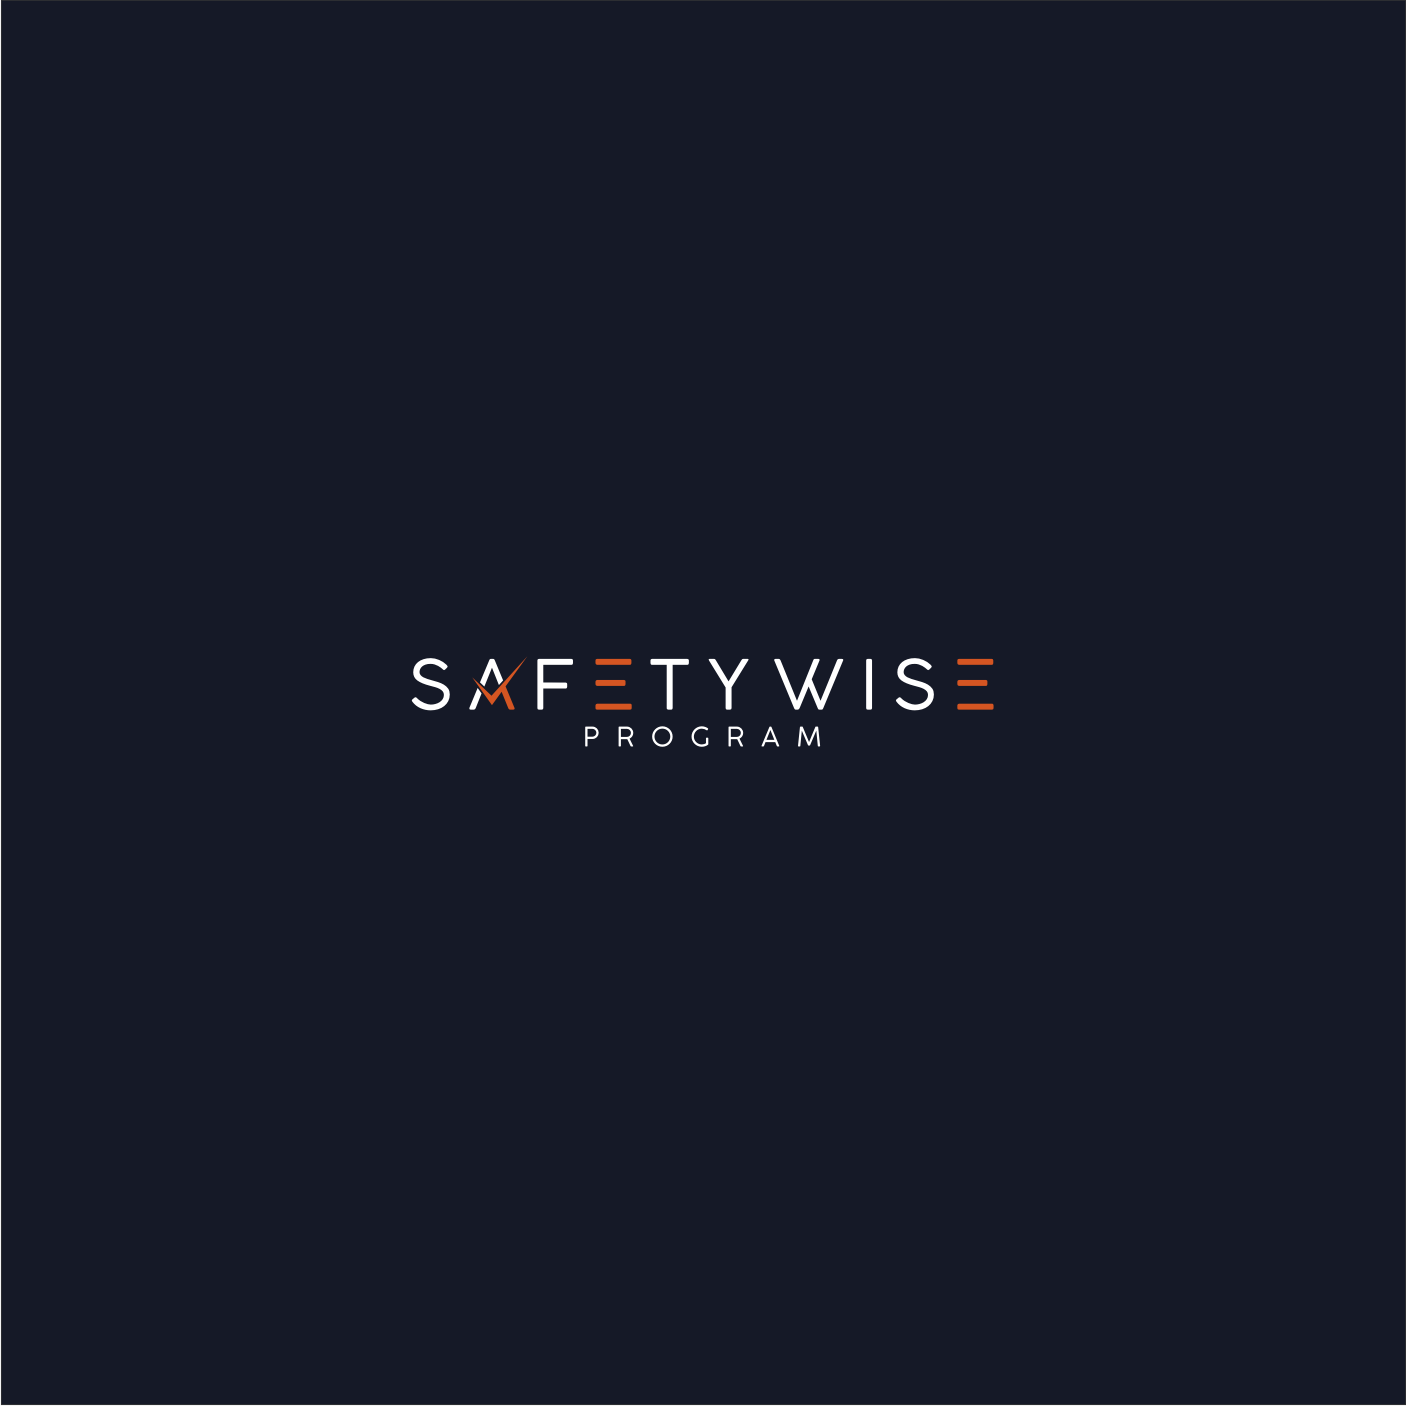 Logo Design by Analla Art - Entry No. 151 in the Logo Design Contest New Logo Design for Safety Wise Program.